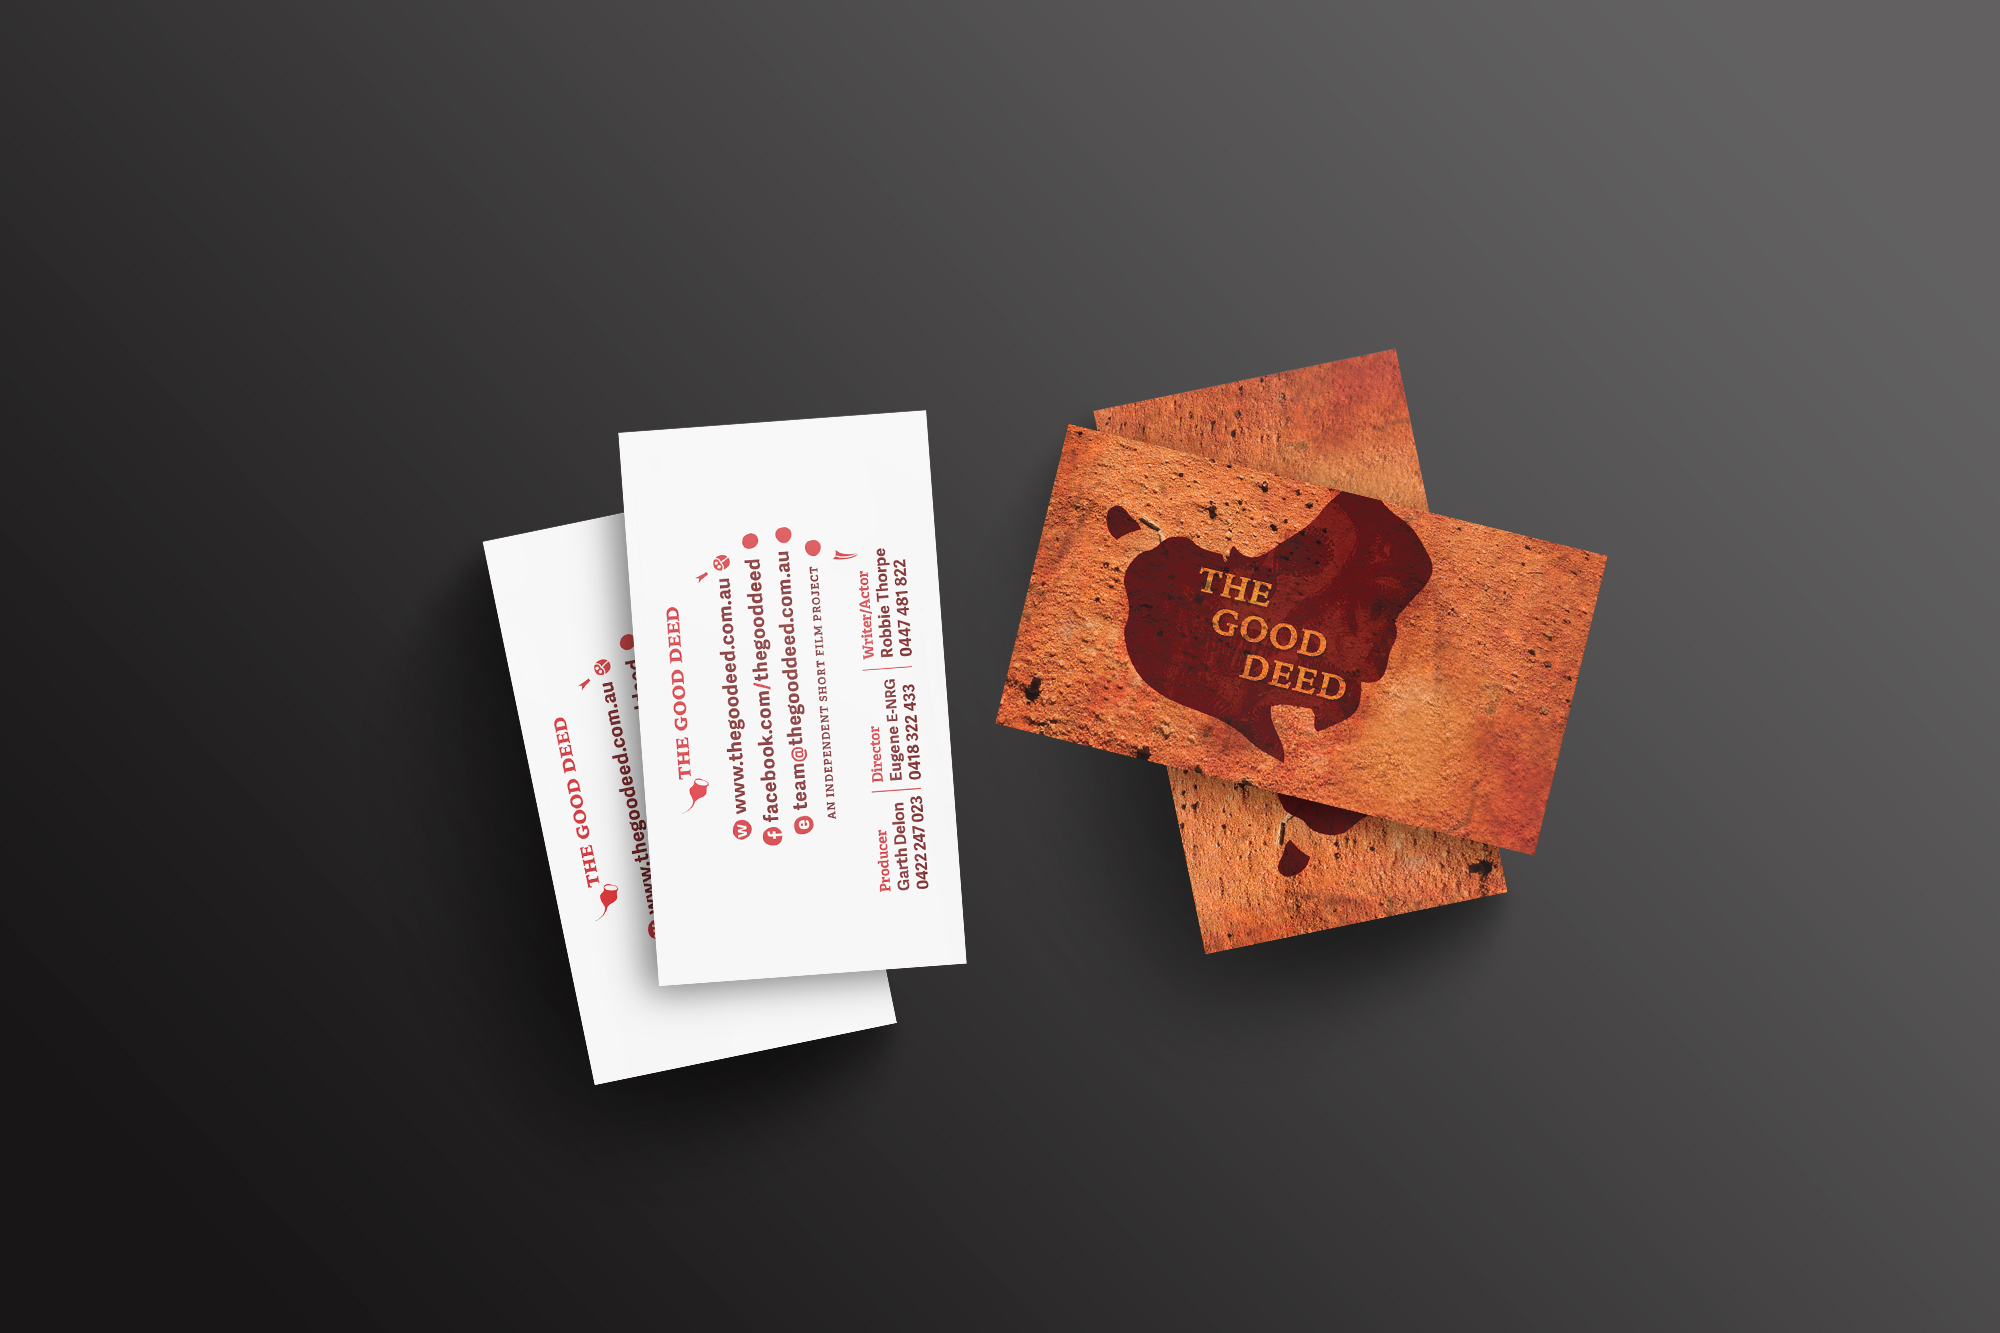 Generous actor business cards ideas business card ideas etadamfo short quotes for business cards choice image business card template colourmoves Image collections